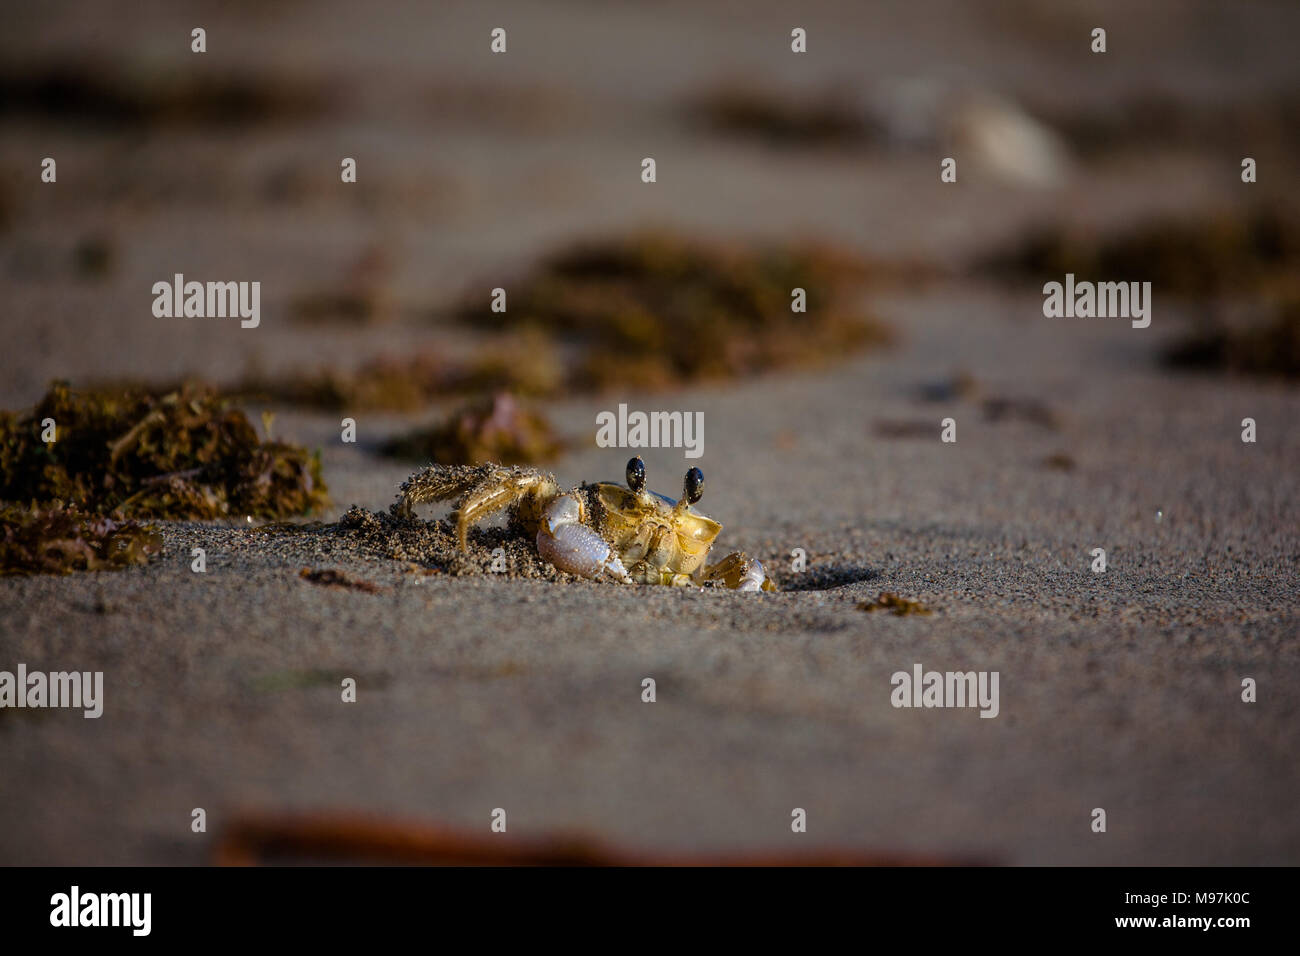 A yellow land crab poking its head of a hole in the sand, Grenada, Caribbean - Stock Image